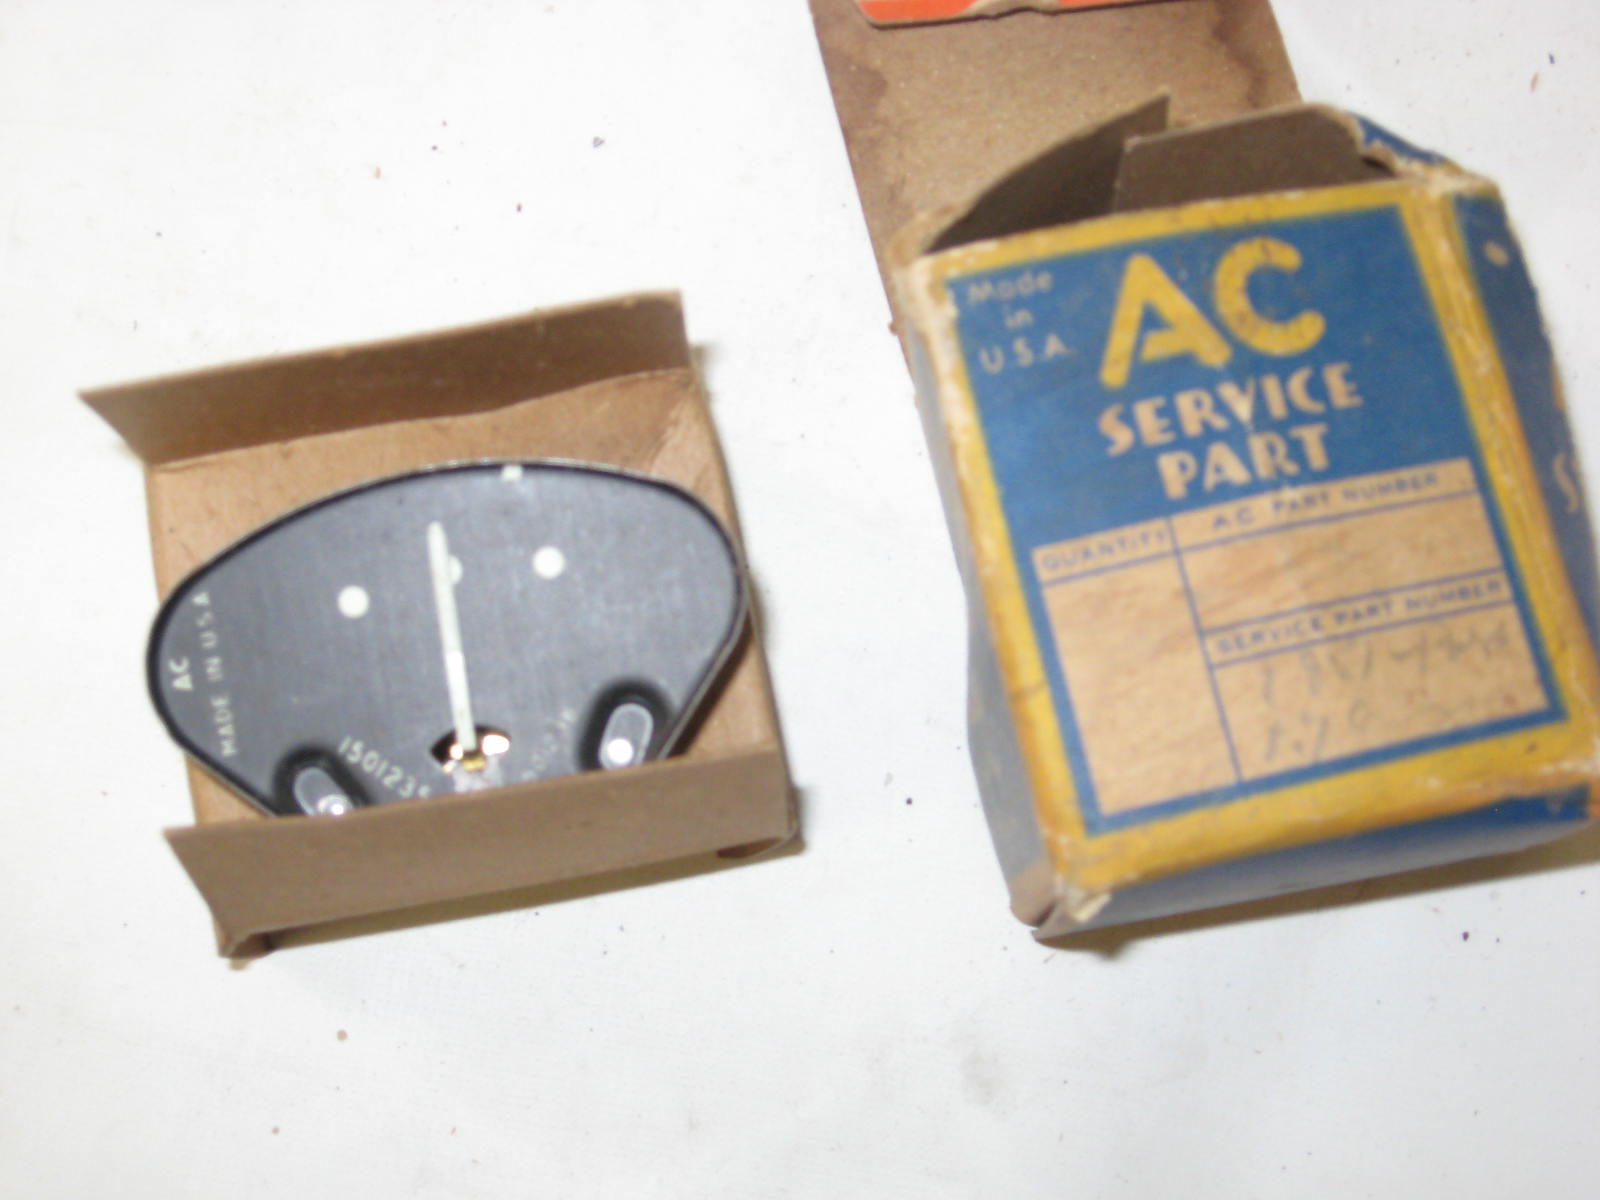 1951 52 Chevrolet Bel Air Styleline Fleetline Dashboard Ammeter Gauge 1501235 (a 1501235)